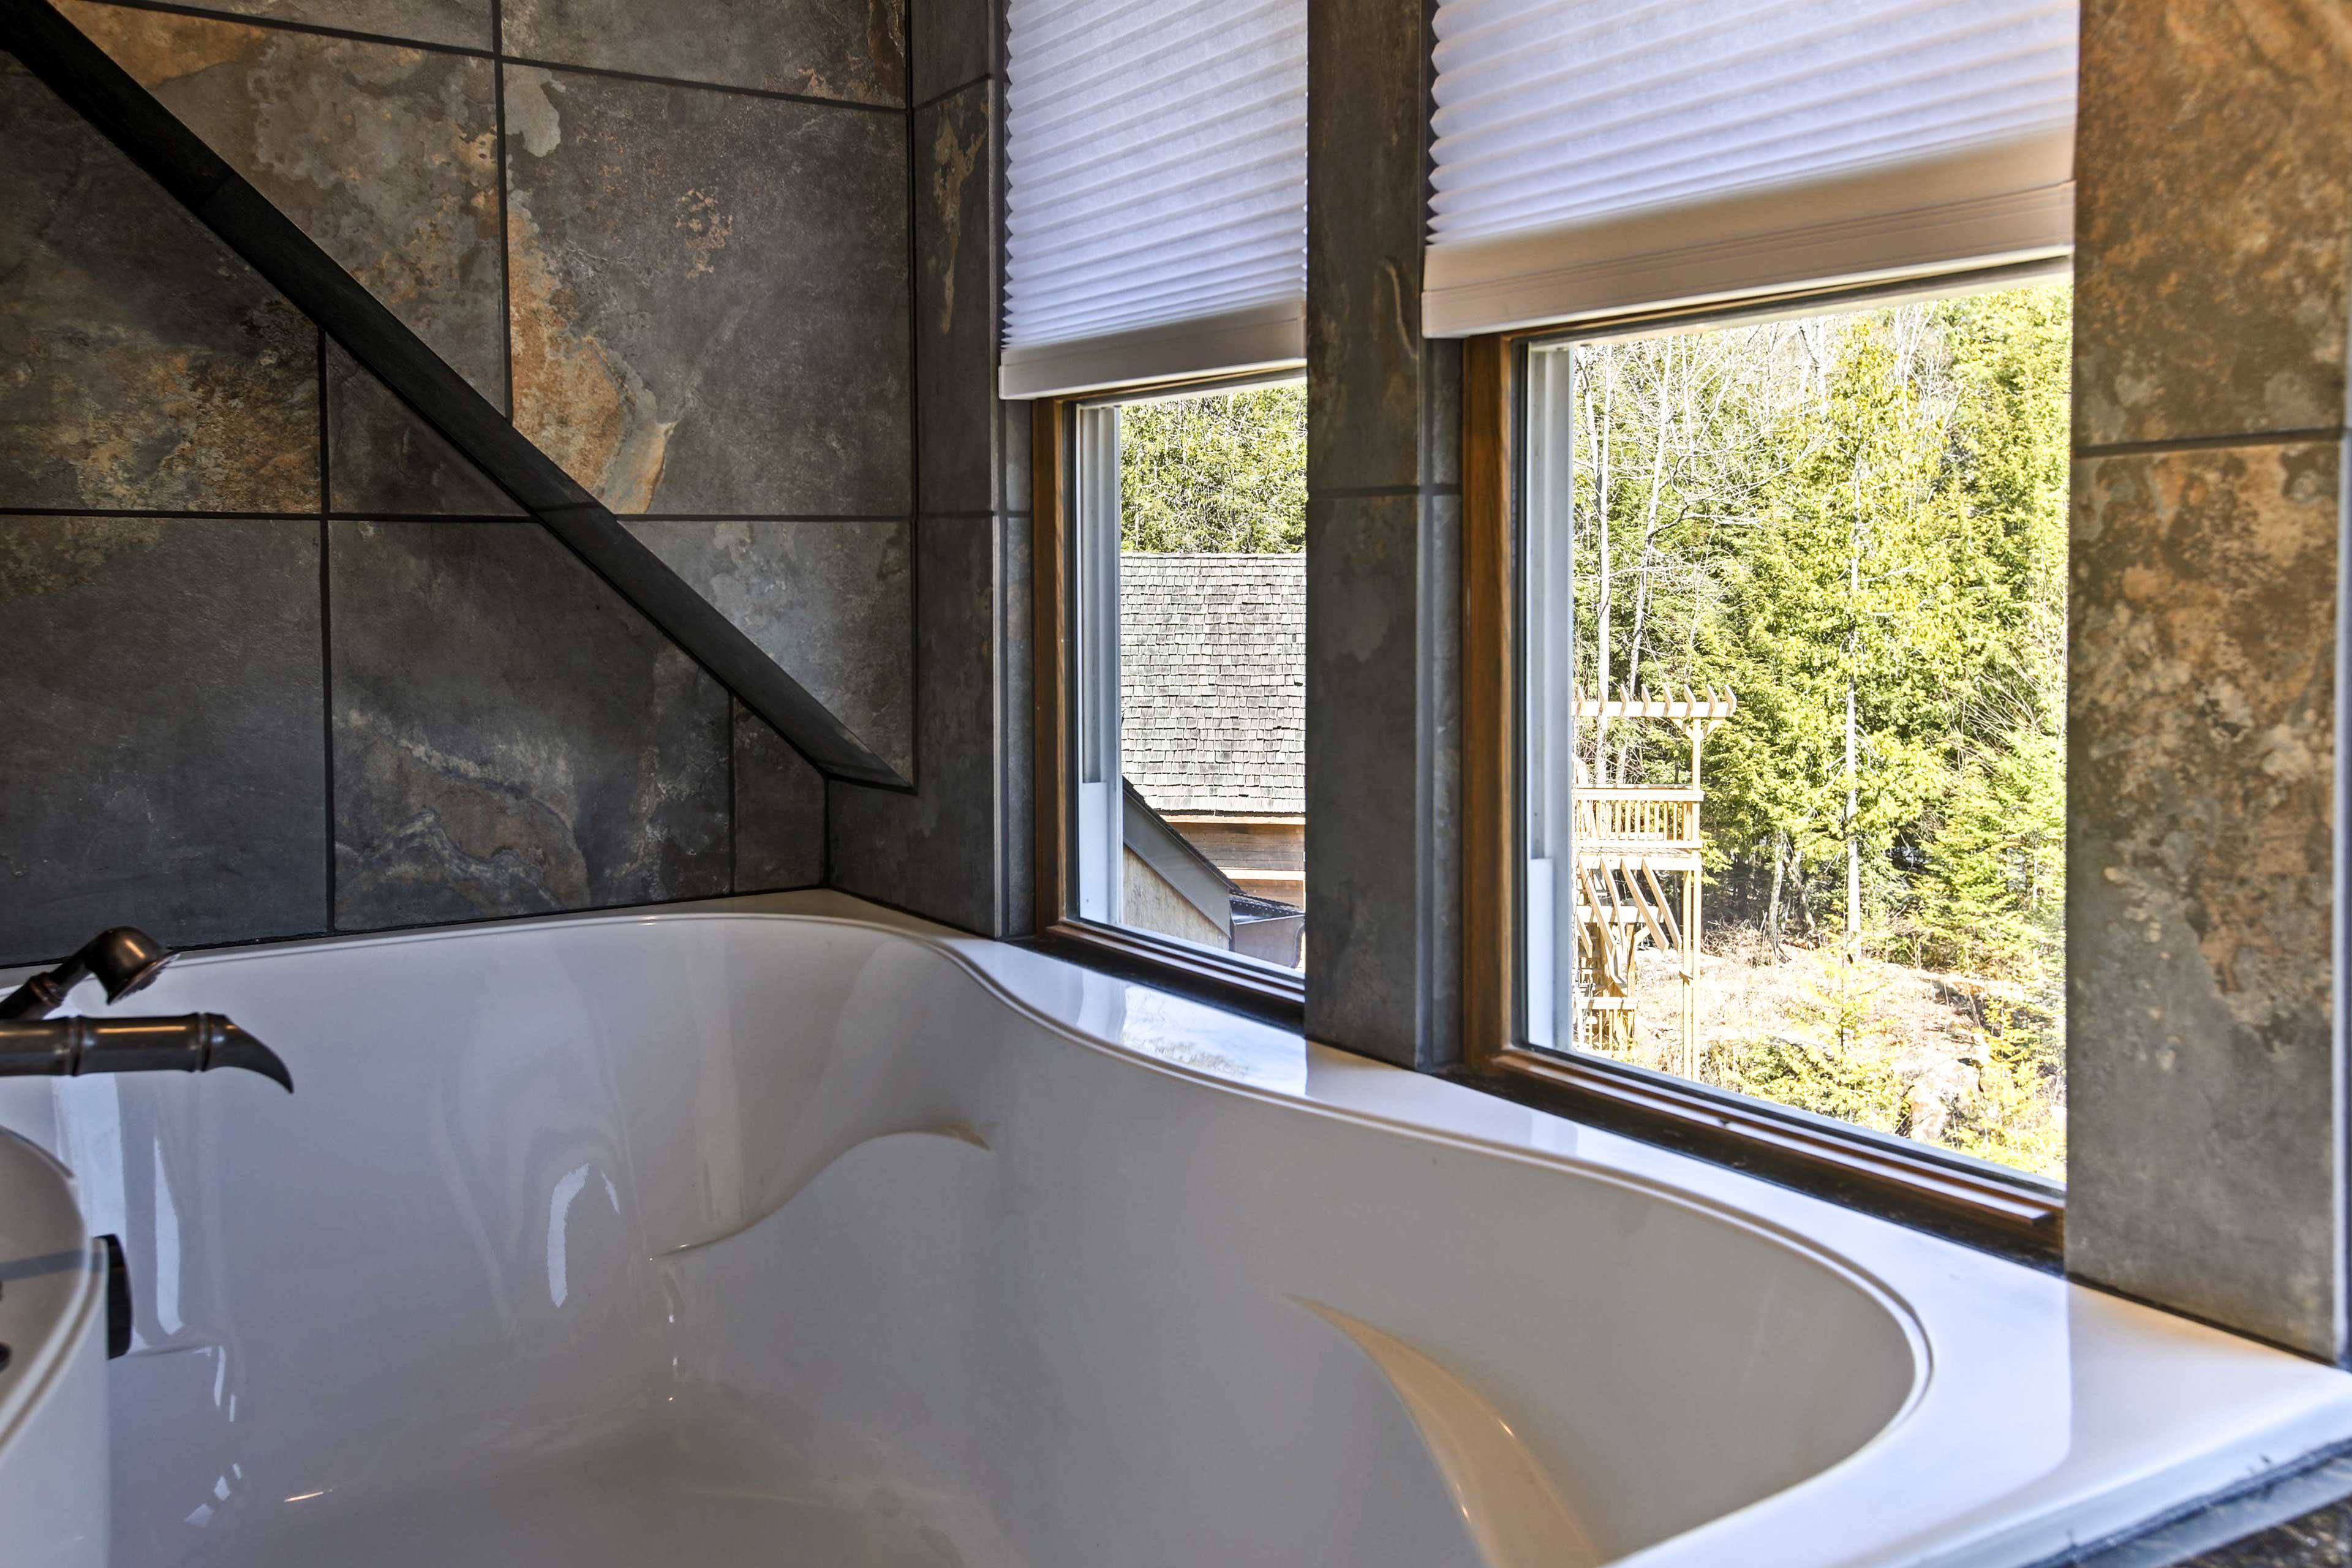 Treat yourself to a long soak in the private garden tub with picturesque views.